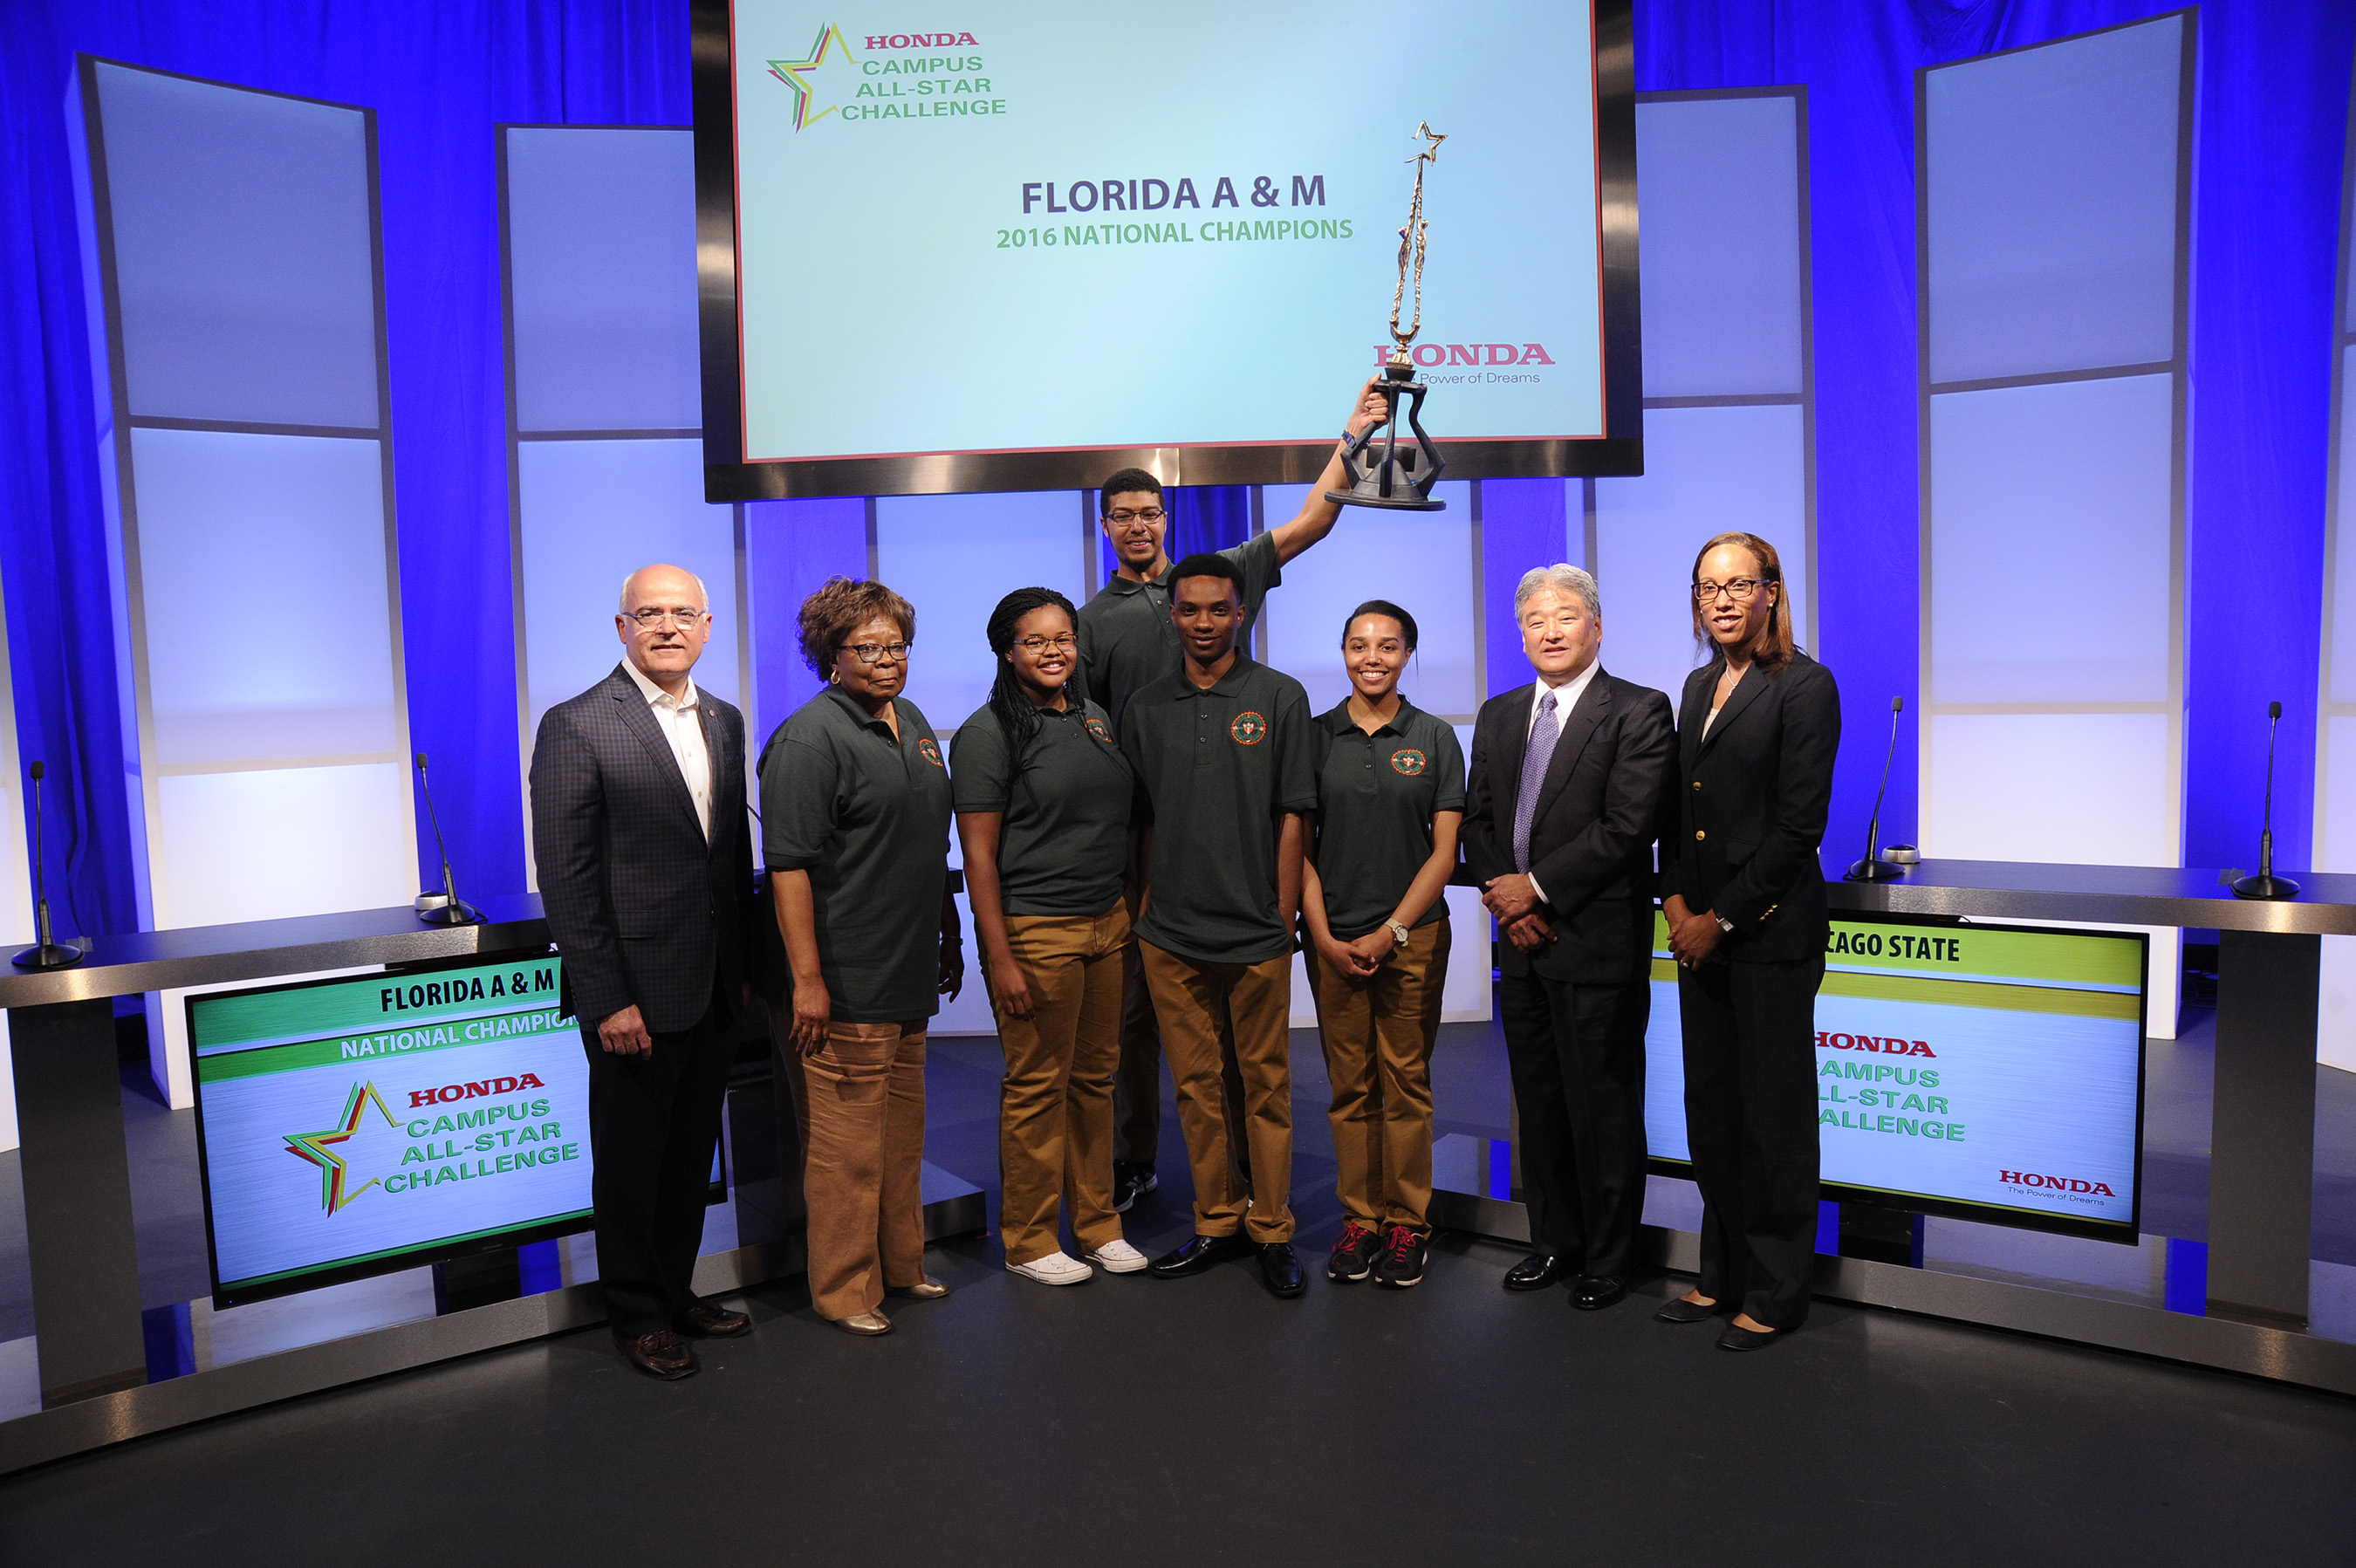 Representatives from Honda congratulate the winning team from Florida A&M University on their eighth win of the Honda Campus All-Star Challenge National Championship. (Pictured from Left to right: Kim Smalley, VP of Human Resources, Administration and Corporate Affairs of American Honda Motor Co., Dr. Vivian Hobbs, coach of Florida A&M University team and the winning team members. Far right, Alexandra Warnier, Manager of Corporate Social Responsibility, American Honda Motor Co., Inc. and Steve Morikawa, Vice President of Corporate Relations and Social Responsibility, American Honda Motor Co., Inc.)